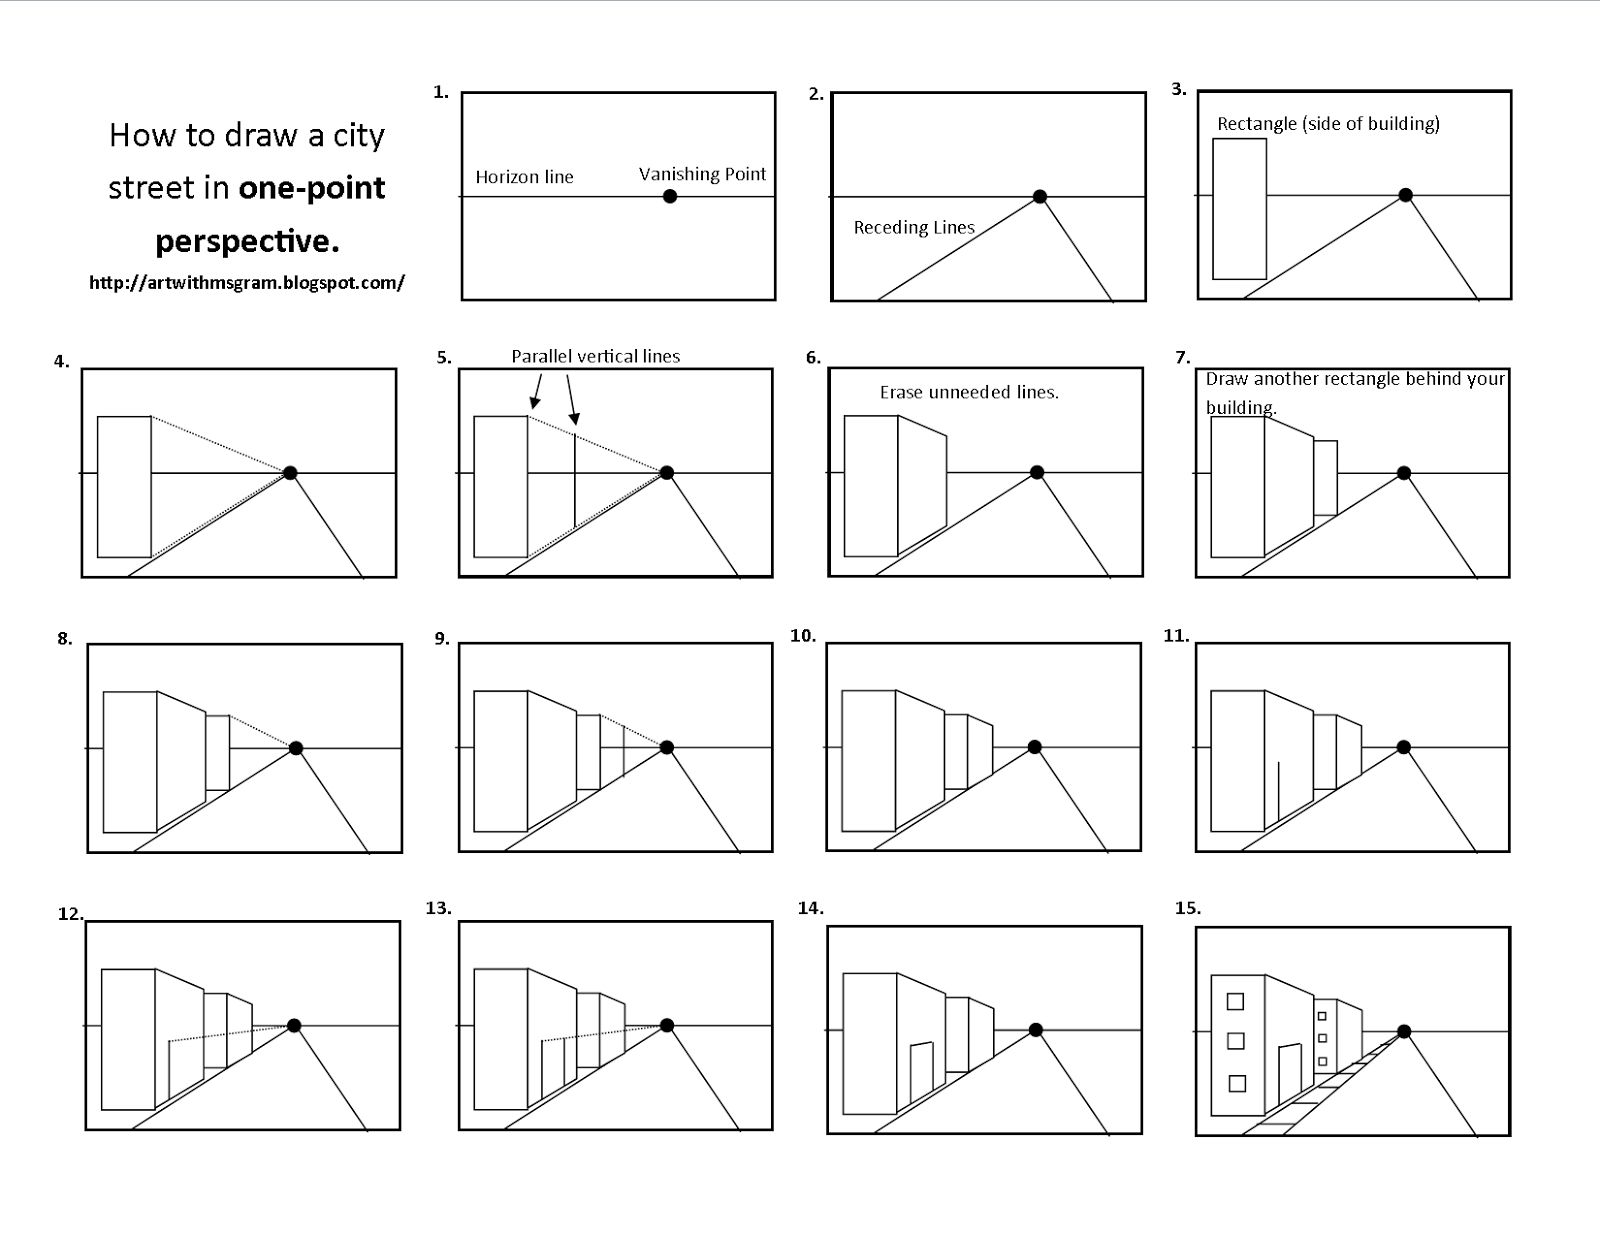 Simple Perspective Drawing For Kids Onepointperspectiveworksheets One Point Perspective City Png 1 600 1 236 Perspective Art One Point Perspective Art Lessons